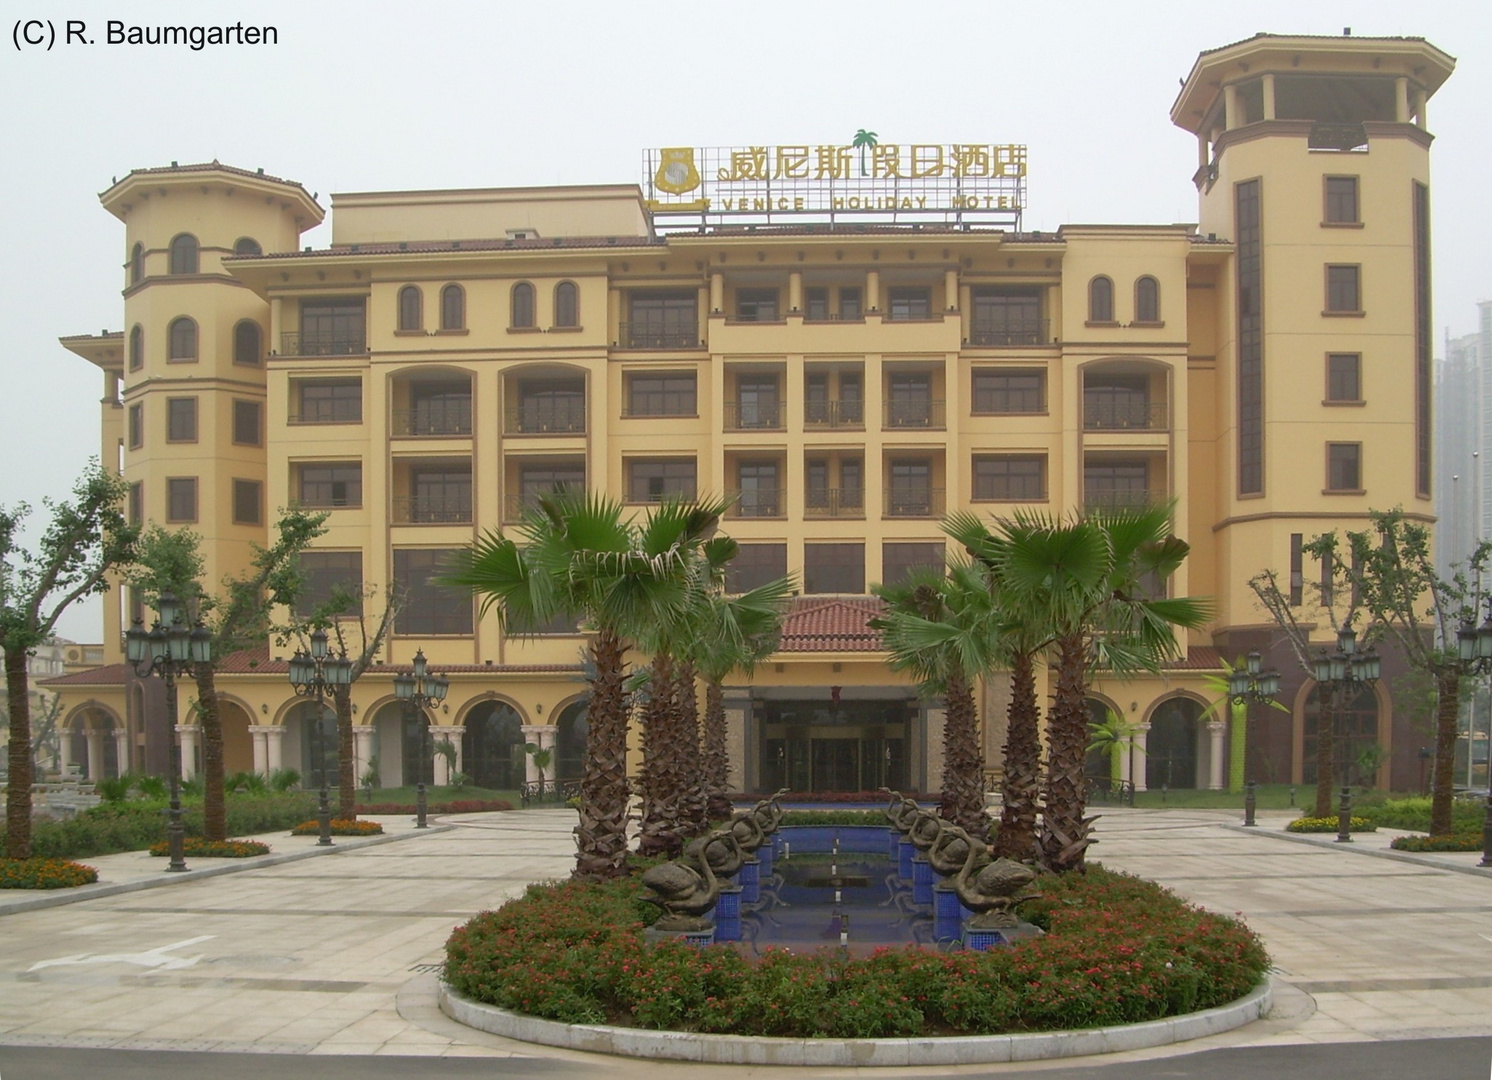 Venice Holiday Hotel Nanjing, in 2008, nowadays Nanjing Suning Venice Hotel